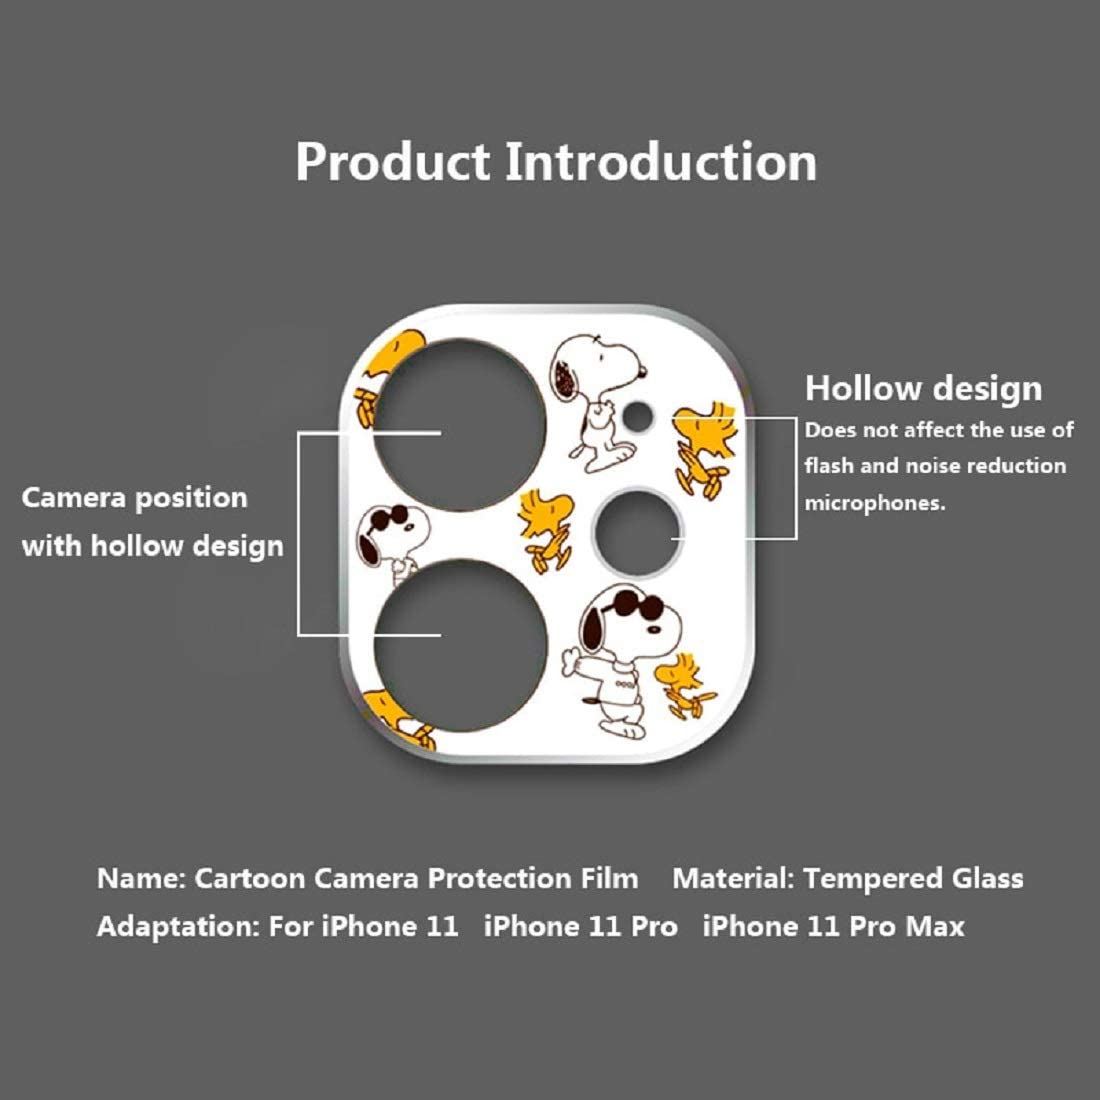 Camera Len Film for iPhone 11 Pro Camera Protector Cartoon Cute Tempered Glass Lens Protection Camera Case Sticker Screen Cover Accessories Mirror Film. for iPhone 11, 10